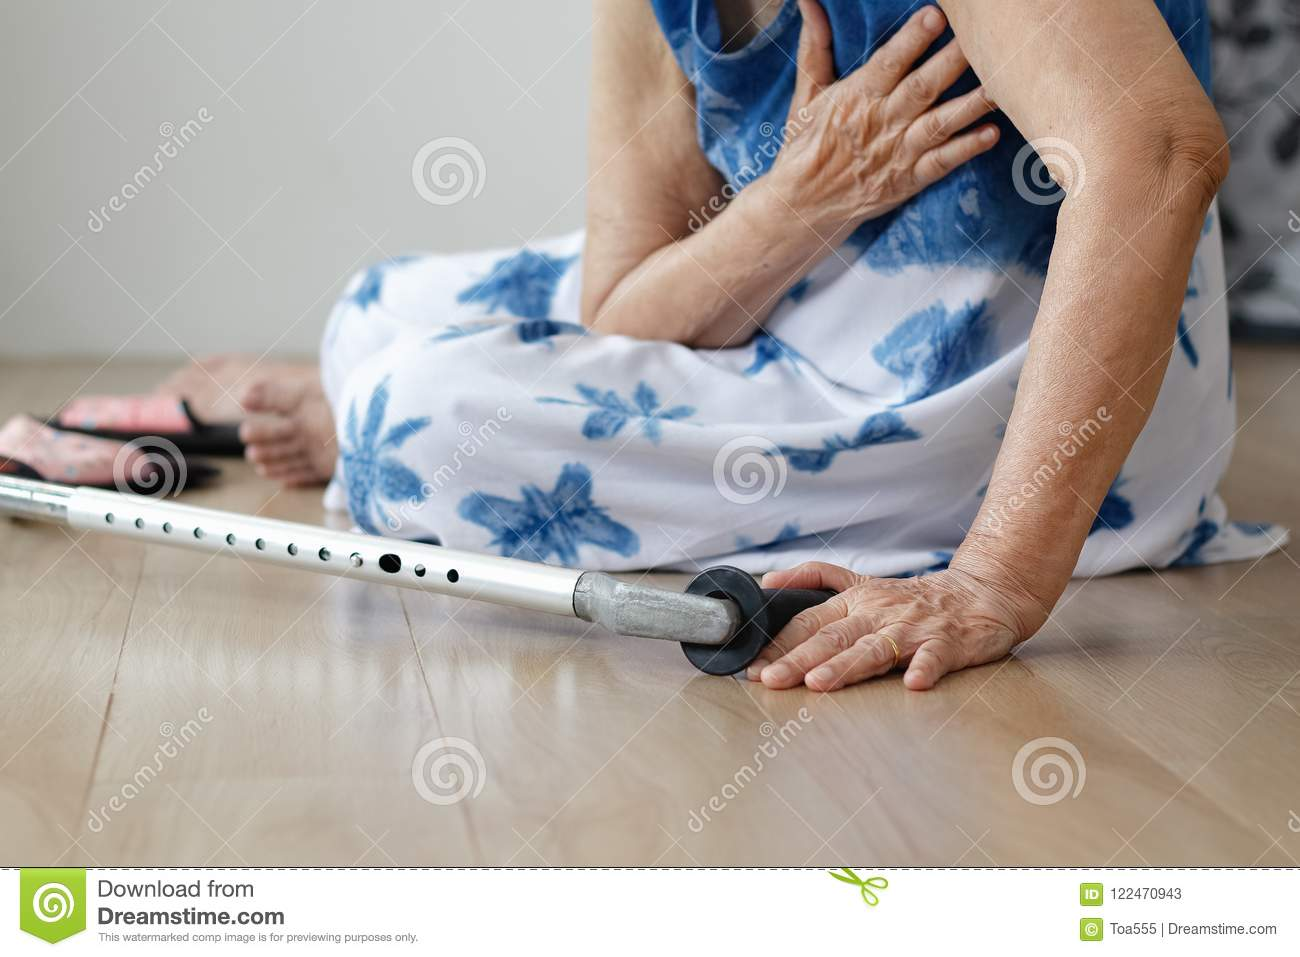 elderly woman falling down at home hearth attack stock image rh dreamstime com Home Word Down at home down east